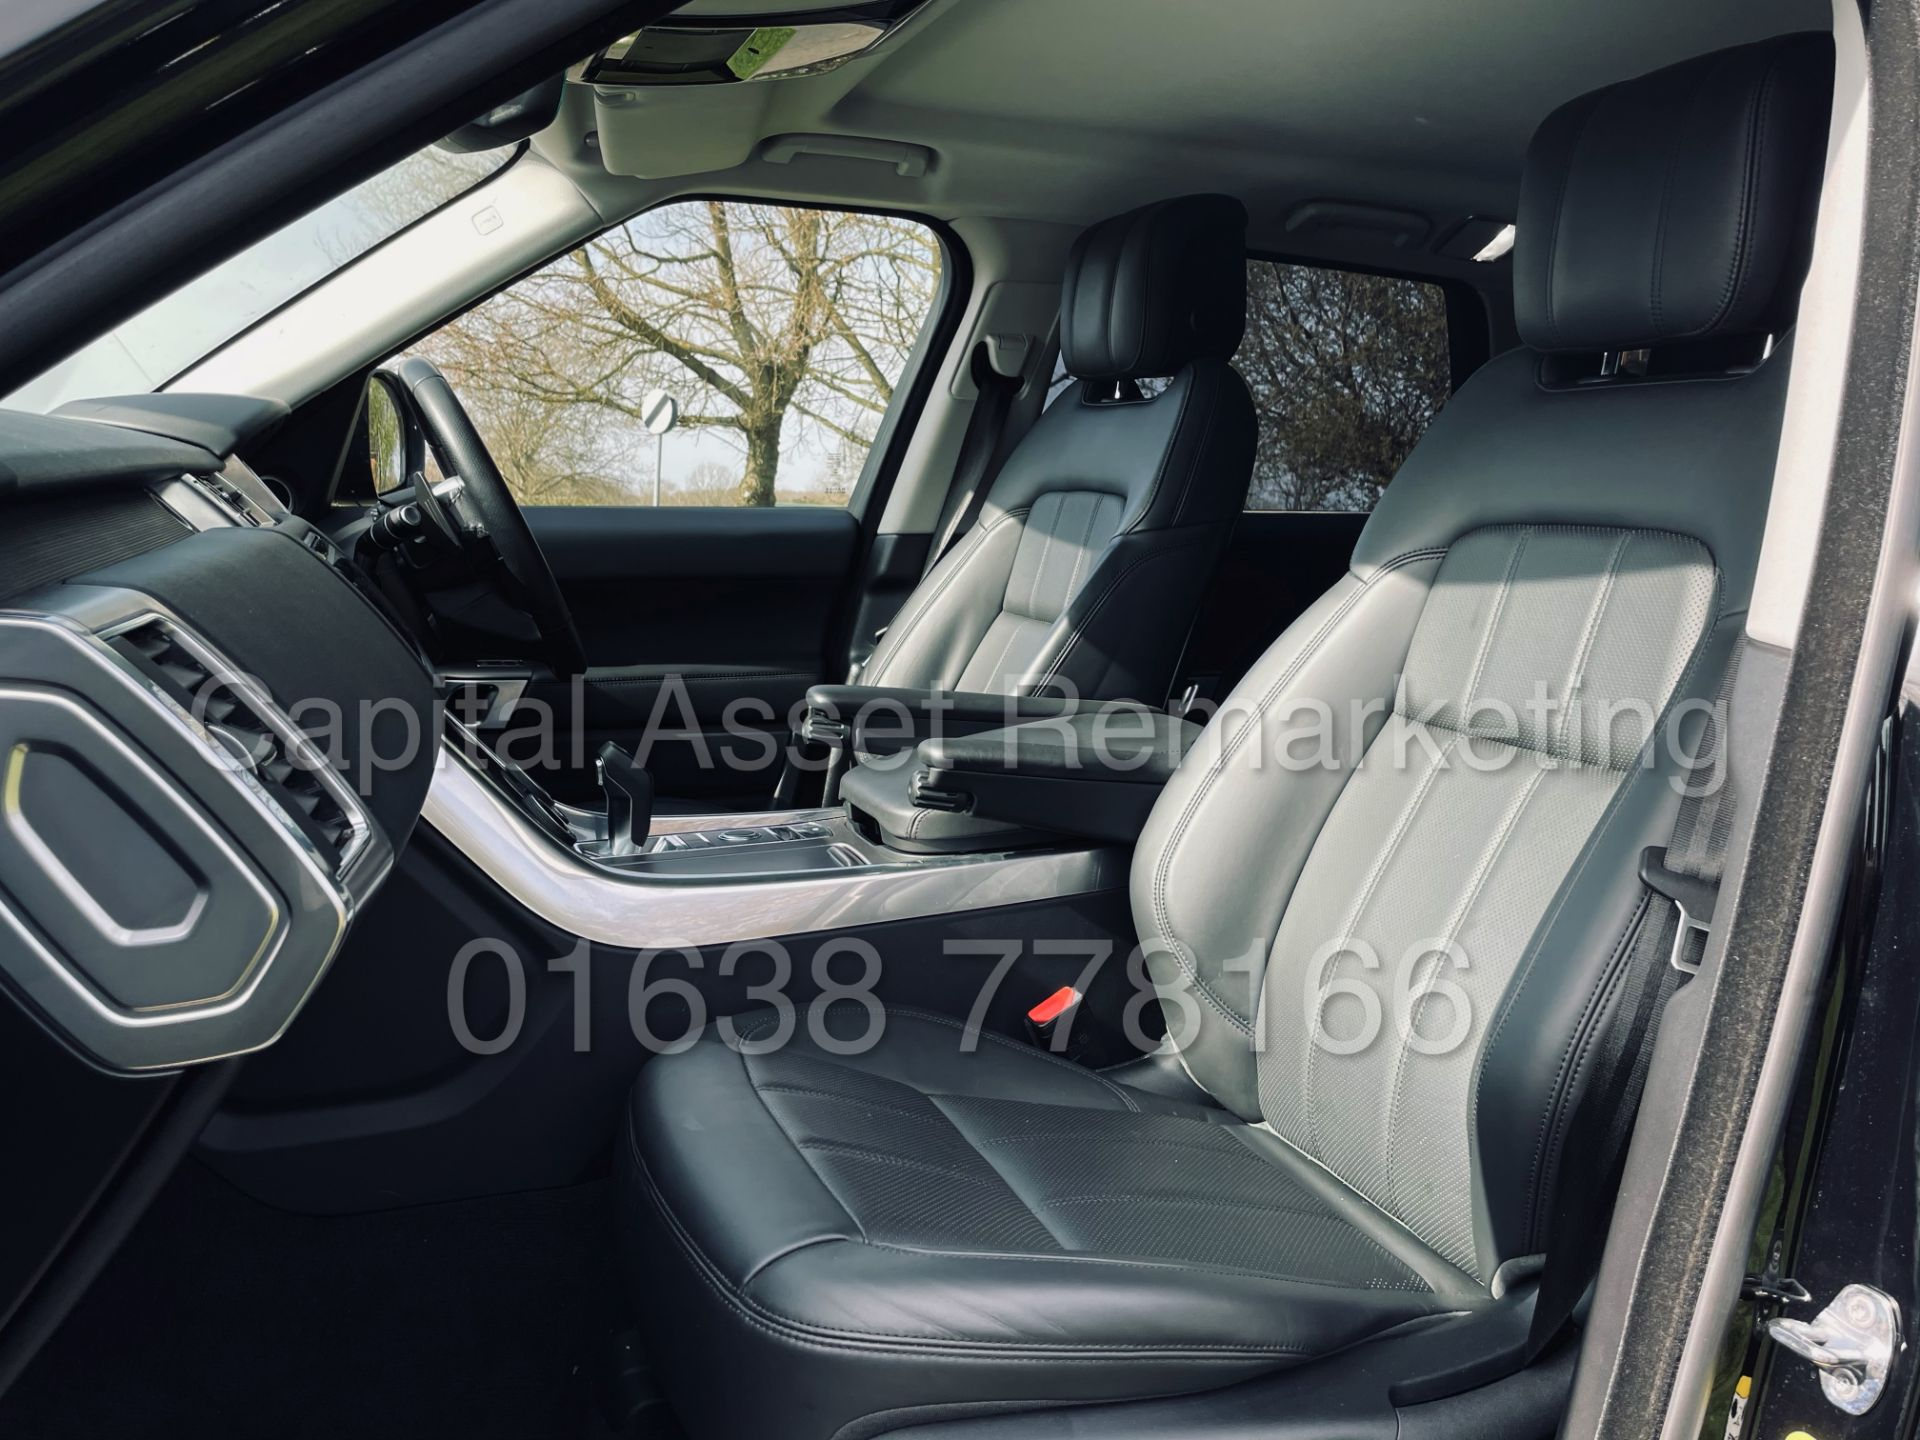 (On Sale) RANGE ROVER SPORT *HSE EDITION* SUV (2018 - NEW MODEL) '8 SPEED AUTO' *FULLY LOADED* - Image 25 of 55